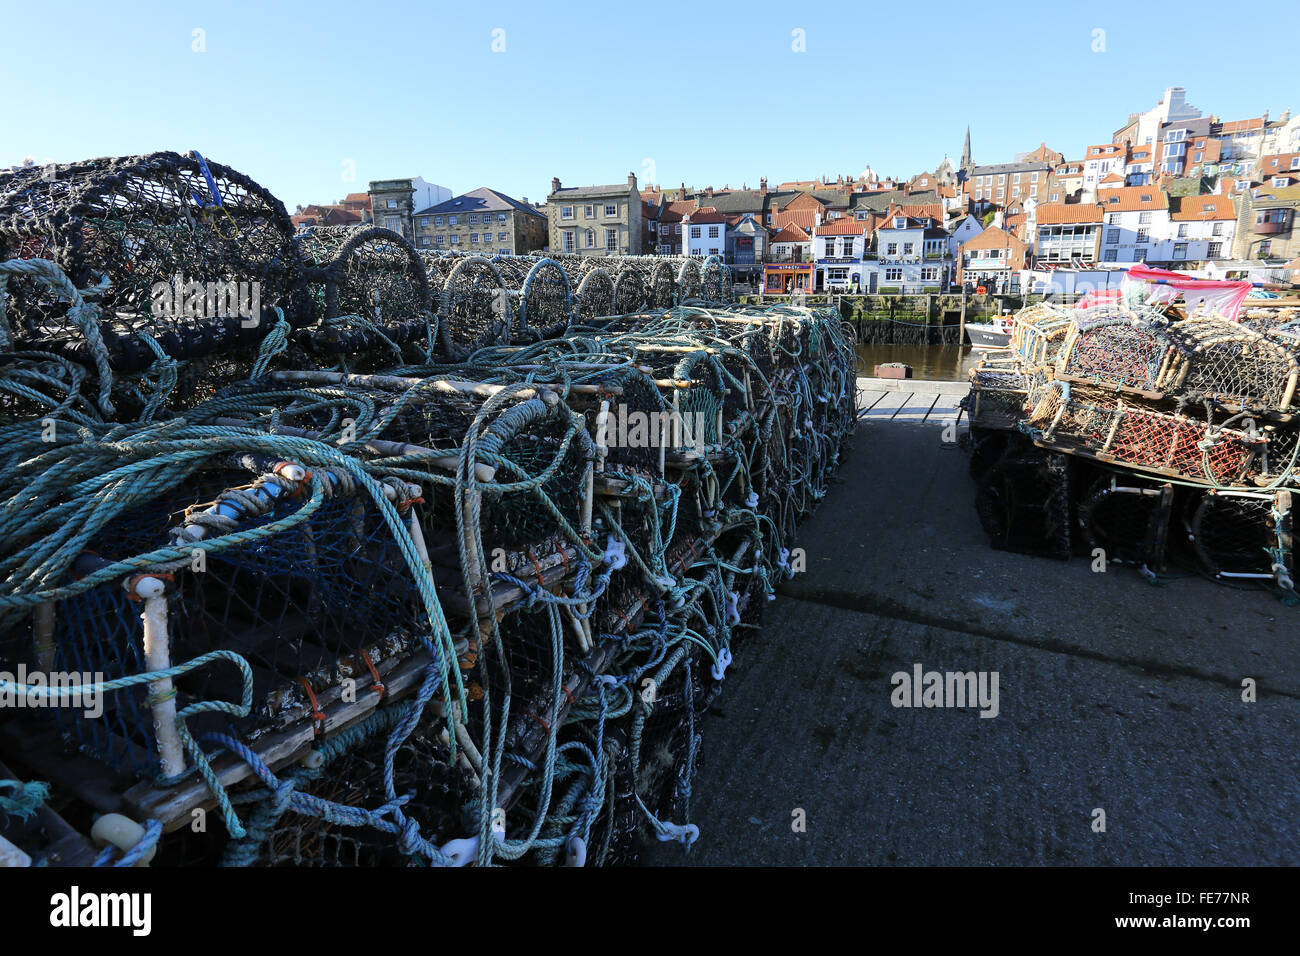 Stacks Of Crab Pots At Fishing Industry By Residential District - Stock Image